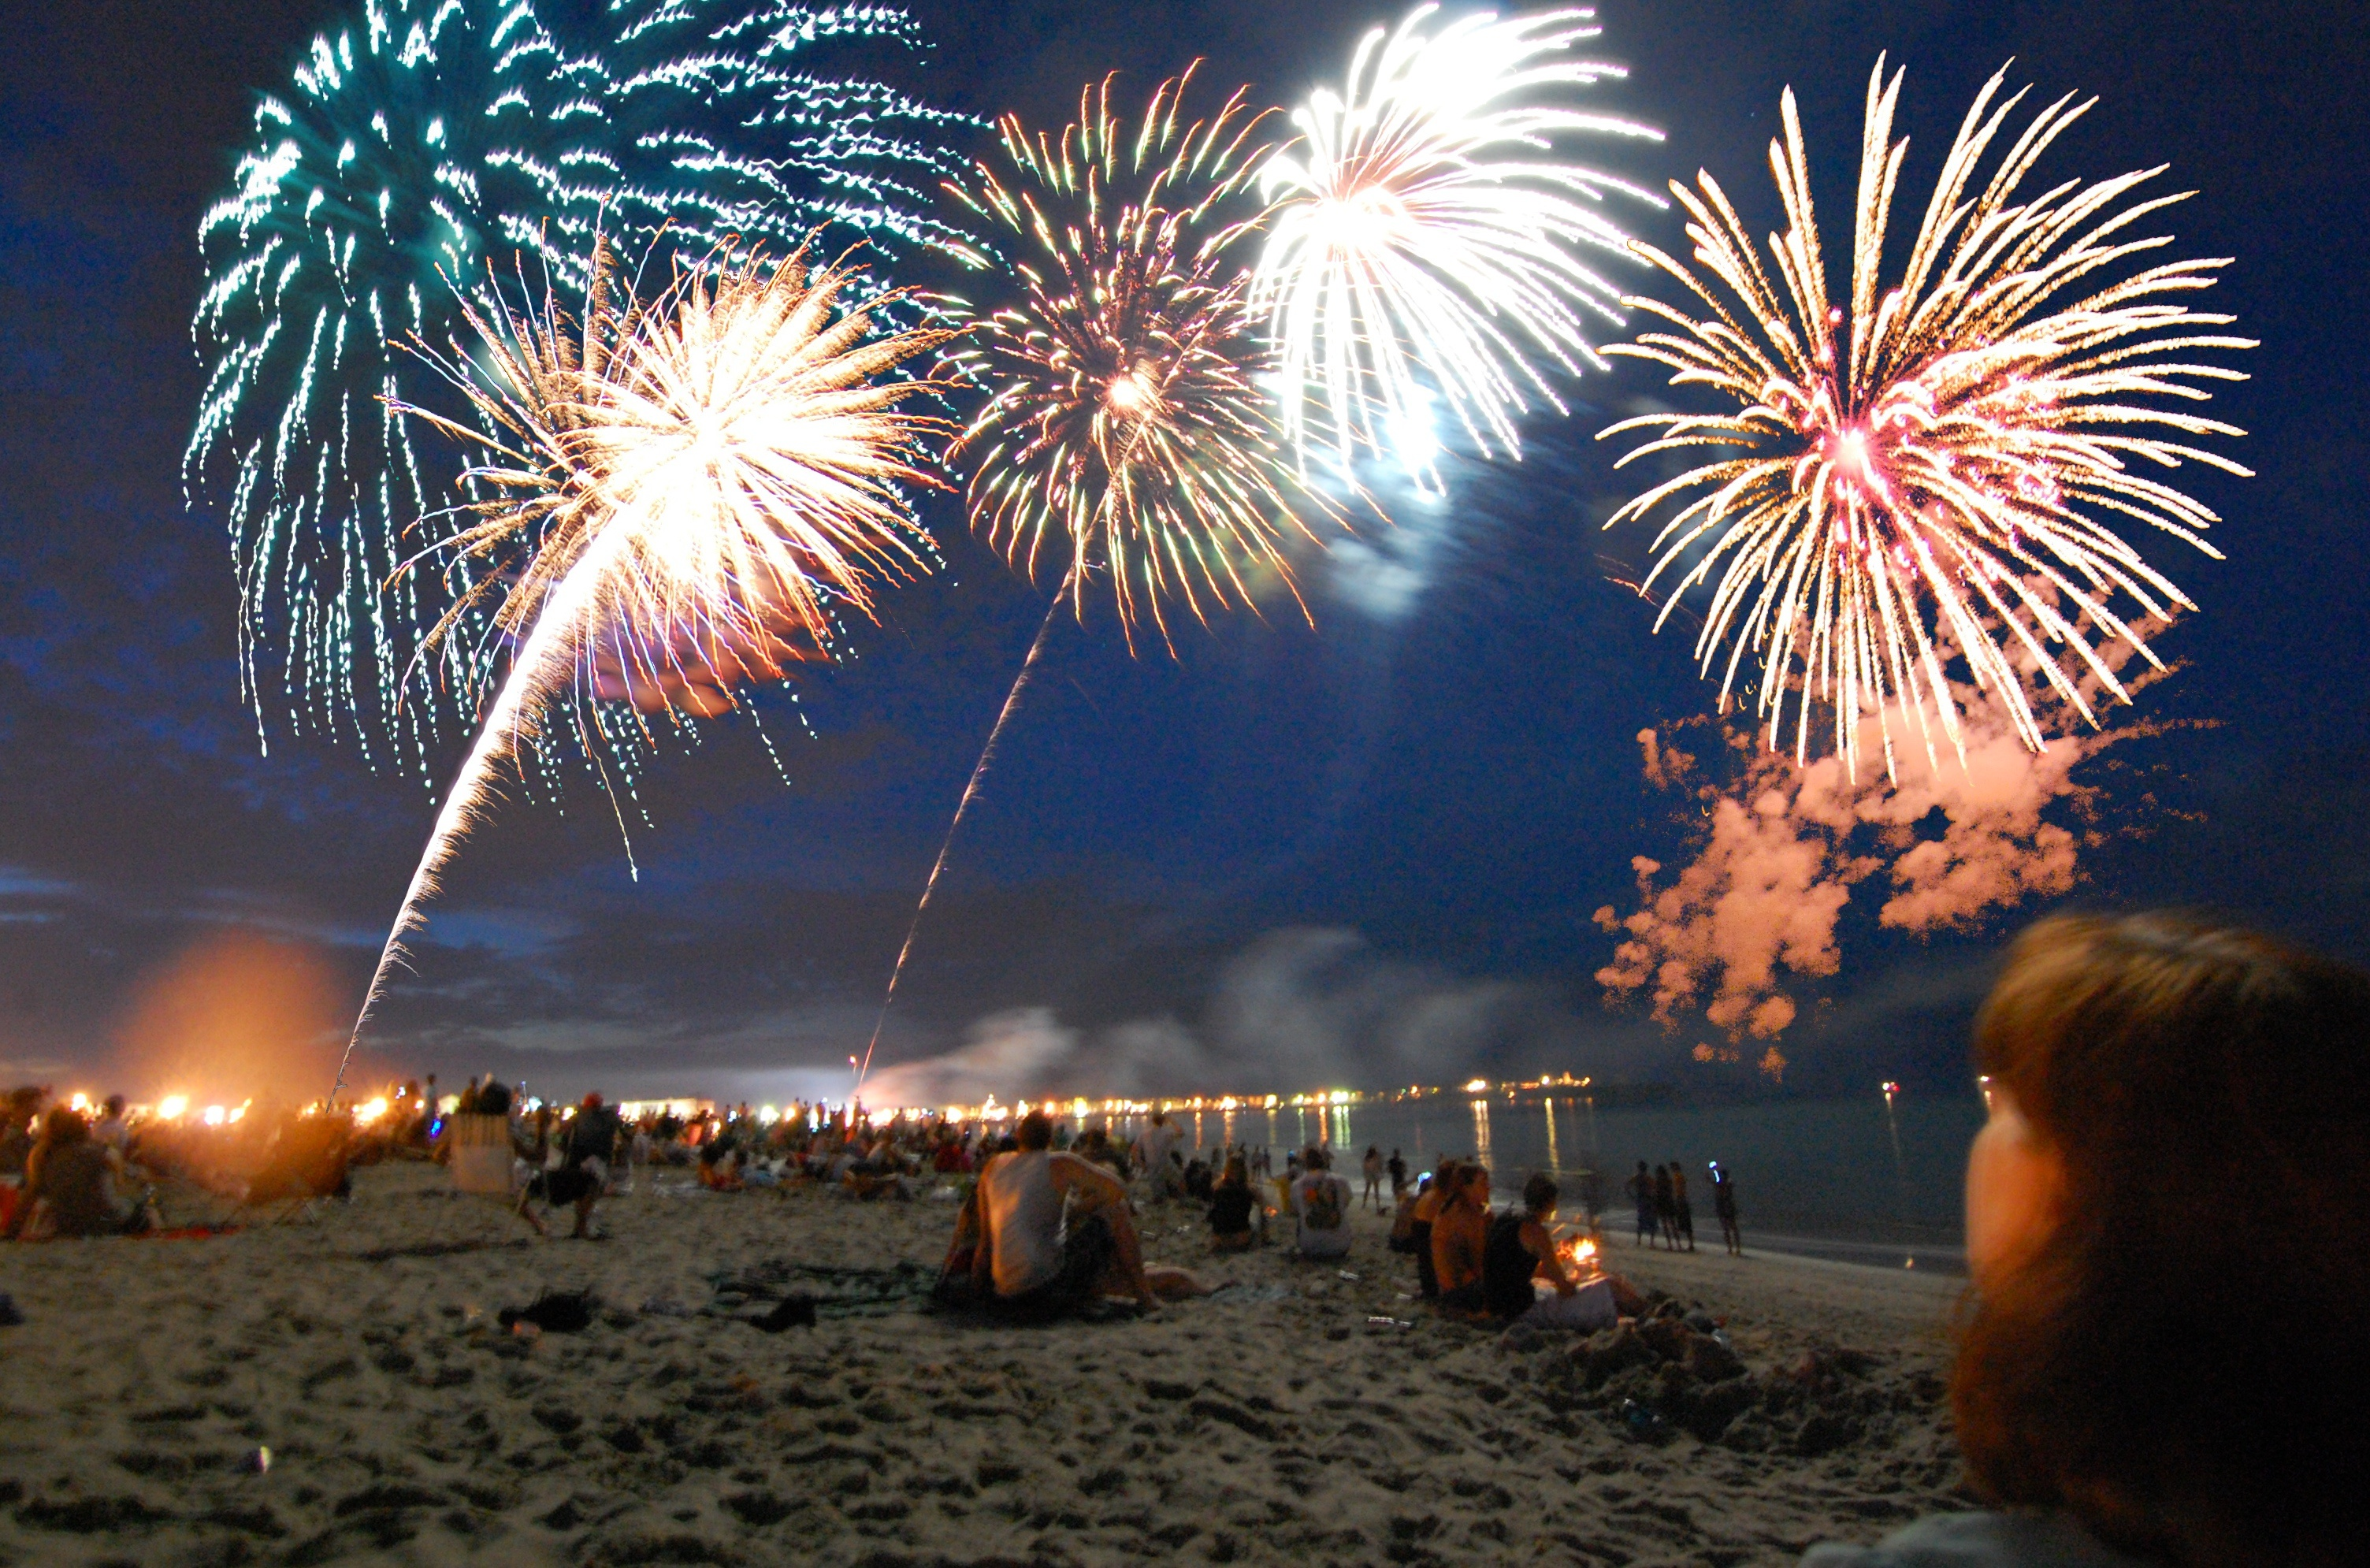 The Best 4th Of July Fireworks Shows In New Hampshire In